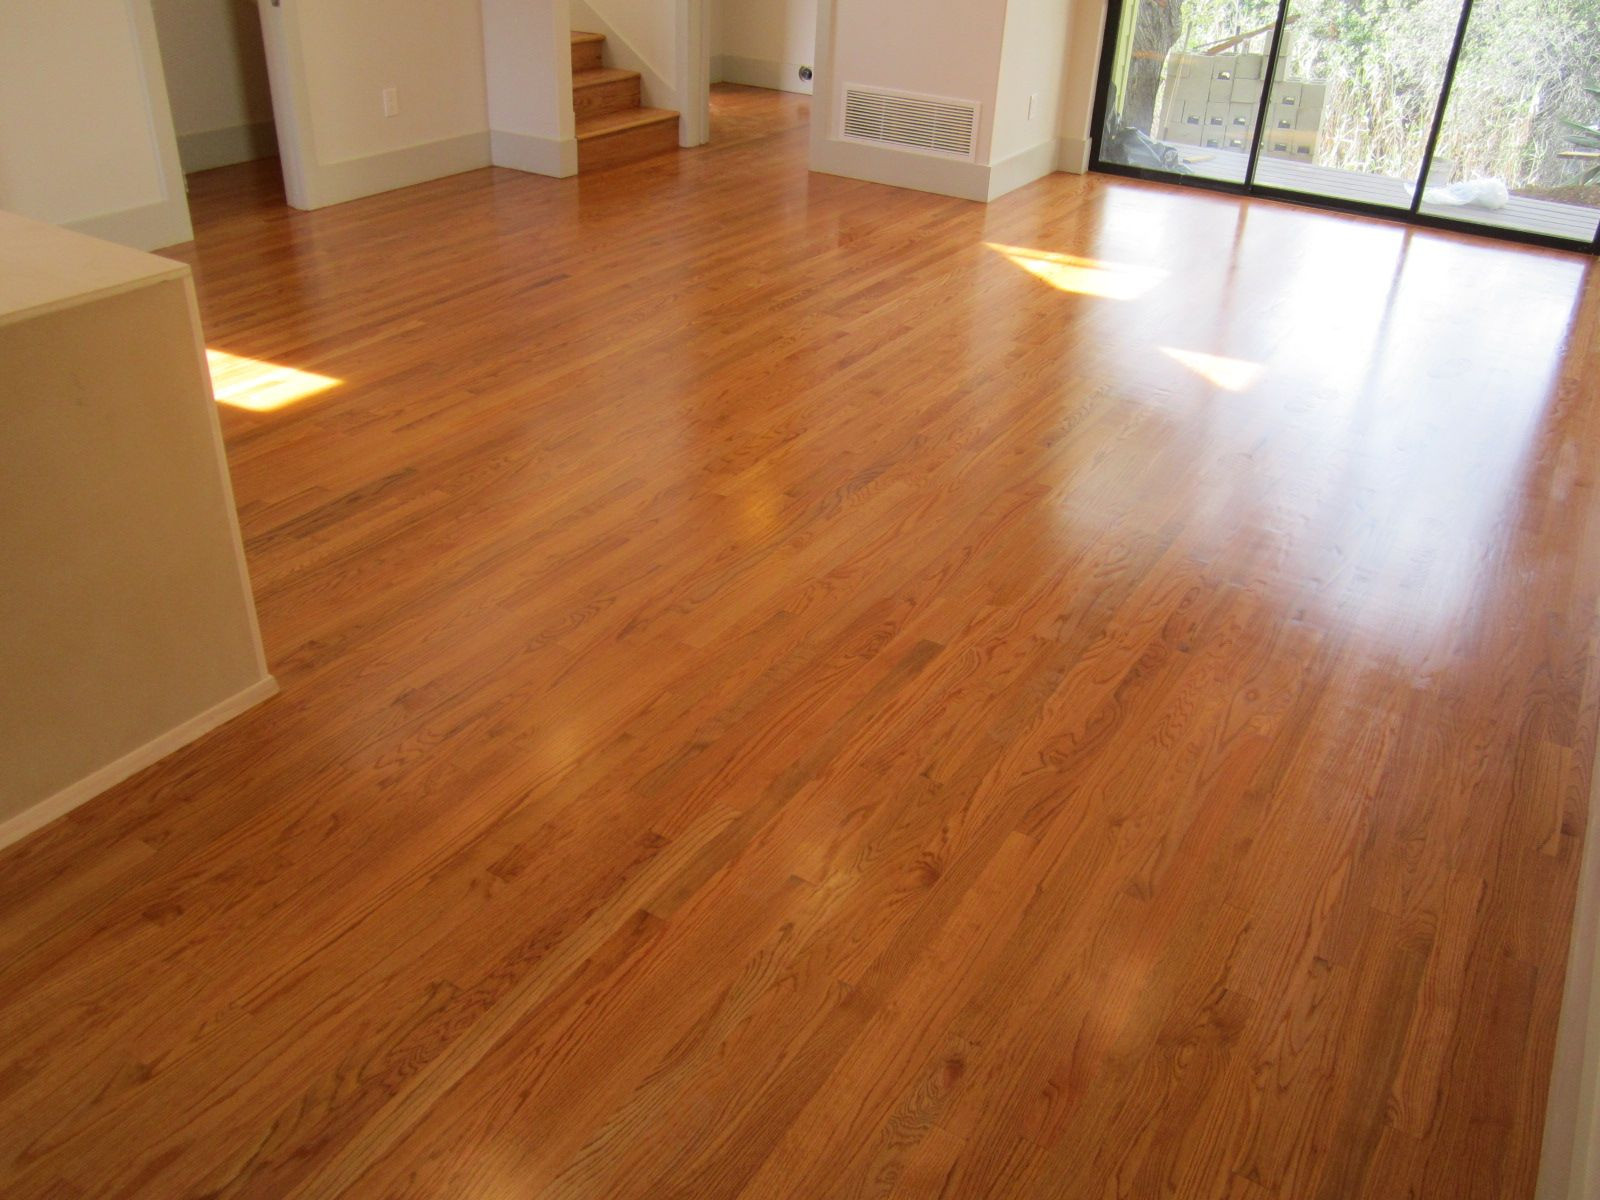 hardwood floor refinishing portland cost of wood floor refinishing hardwood floor repair floor plan ideas within stained concrete floors cost vs tile ideas for home floor design topics upload with 8 pictures